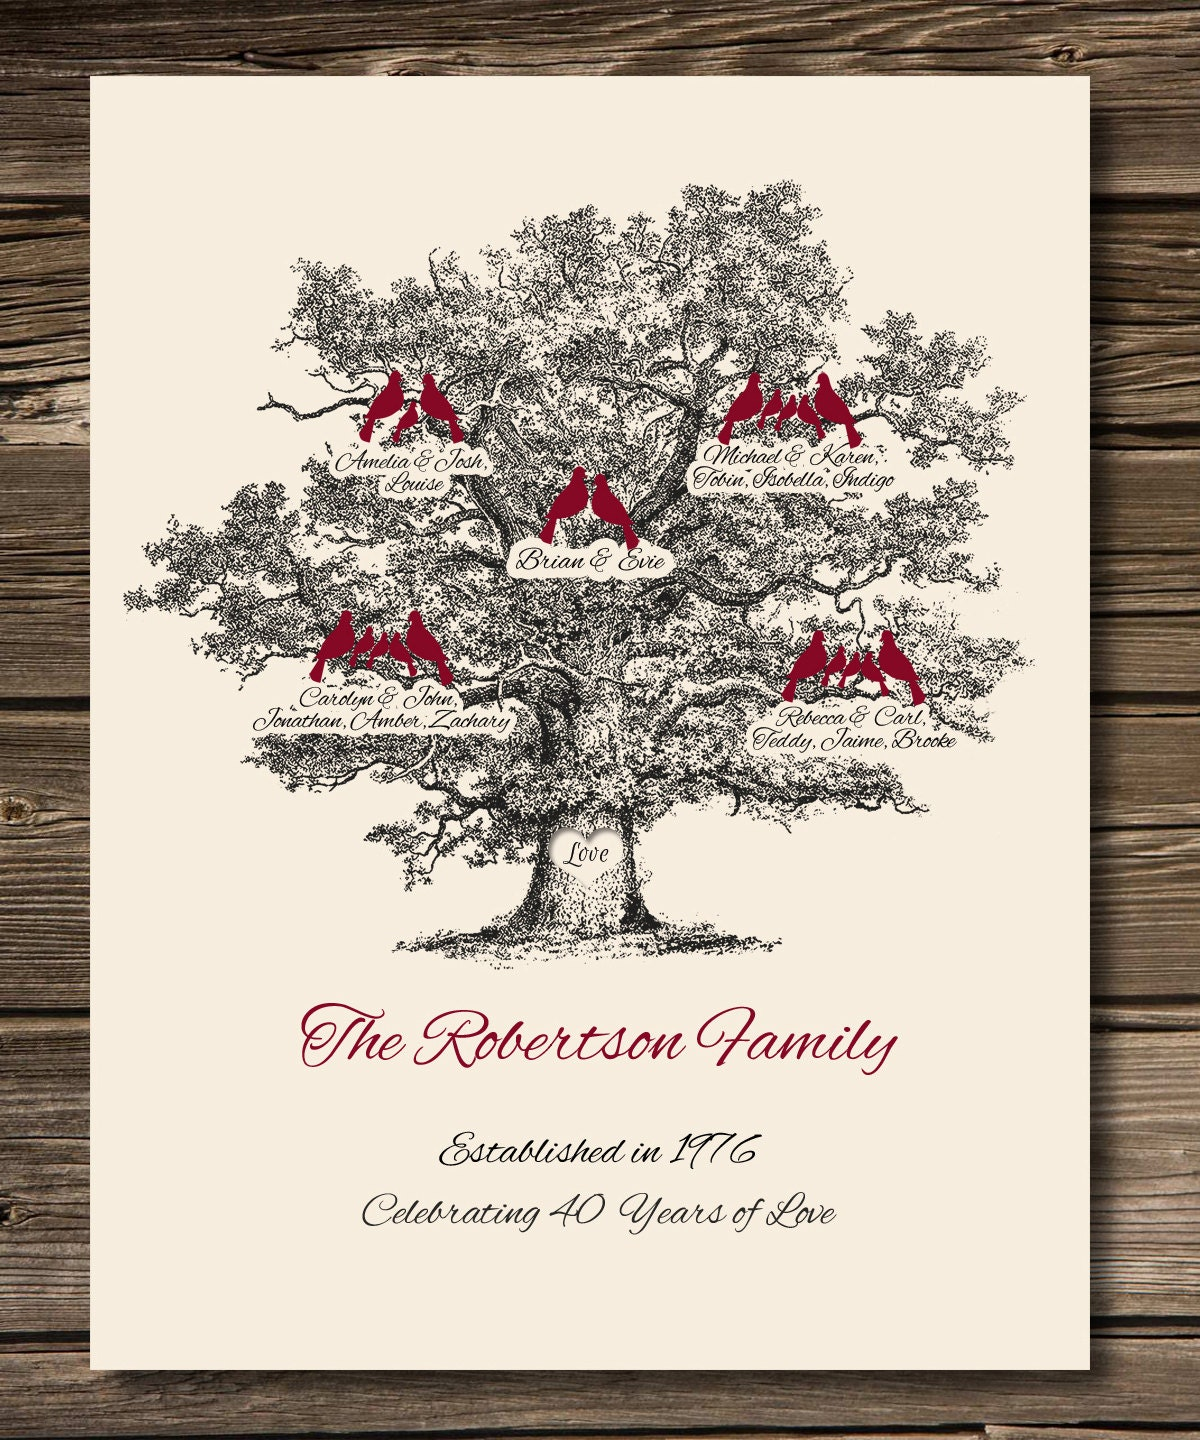 Ruby Wedding Gifts For Parents: 40th Anniversary Gift For Parents Personalized Ruby